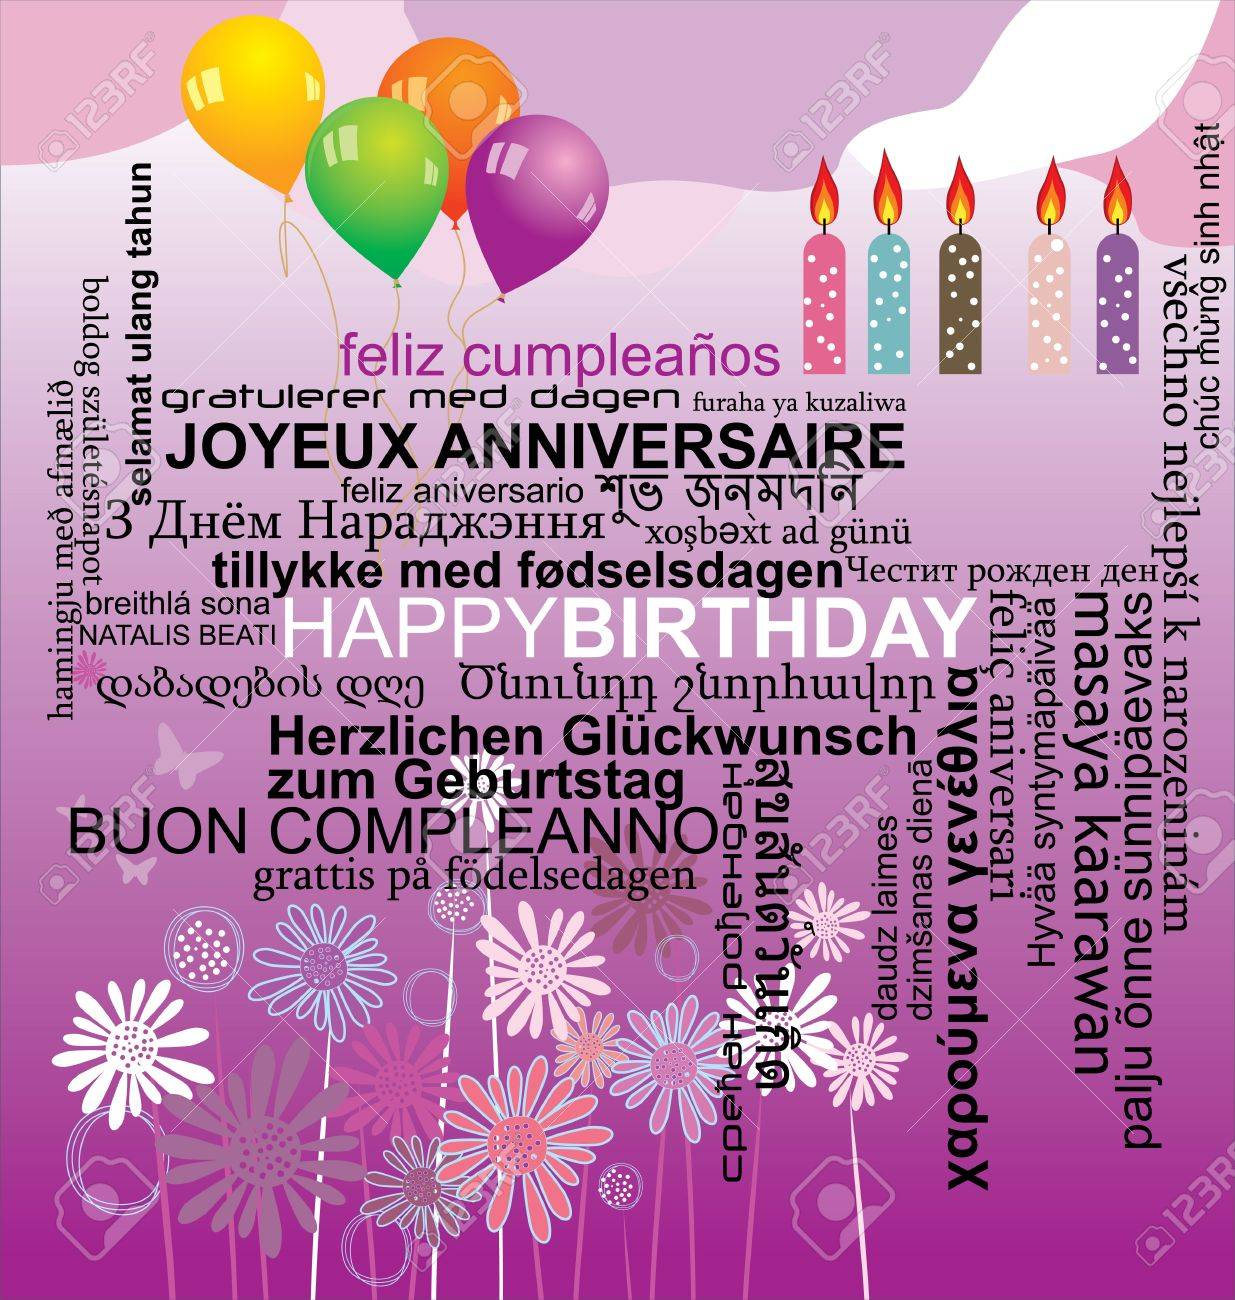 Happy birthday word collage background Stock Vector - 13077689